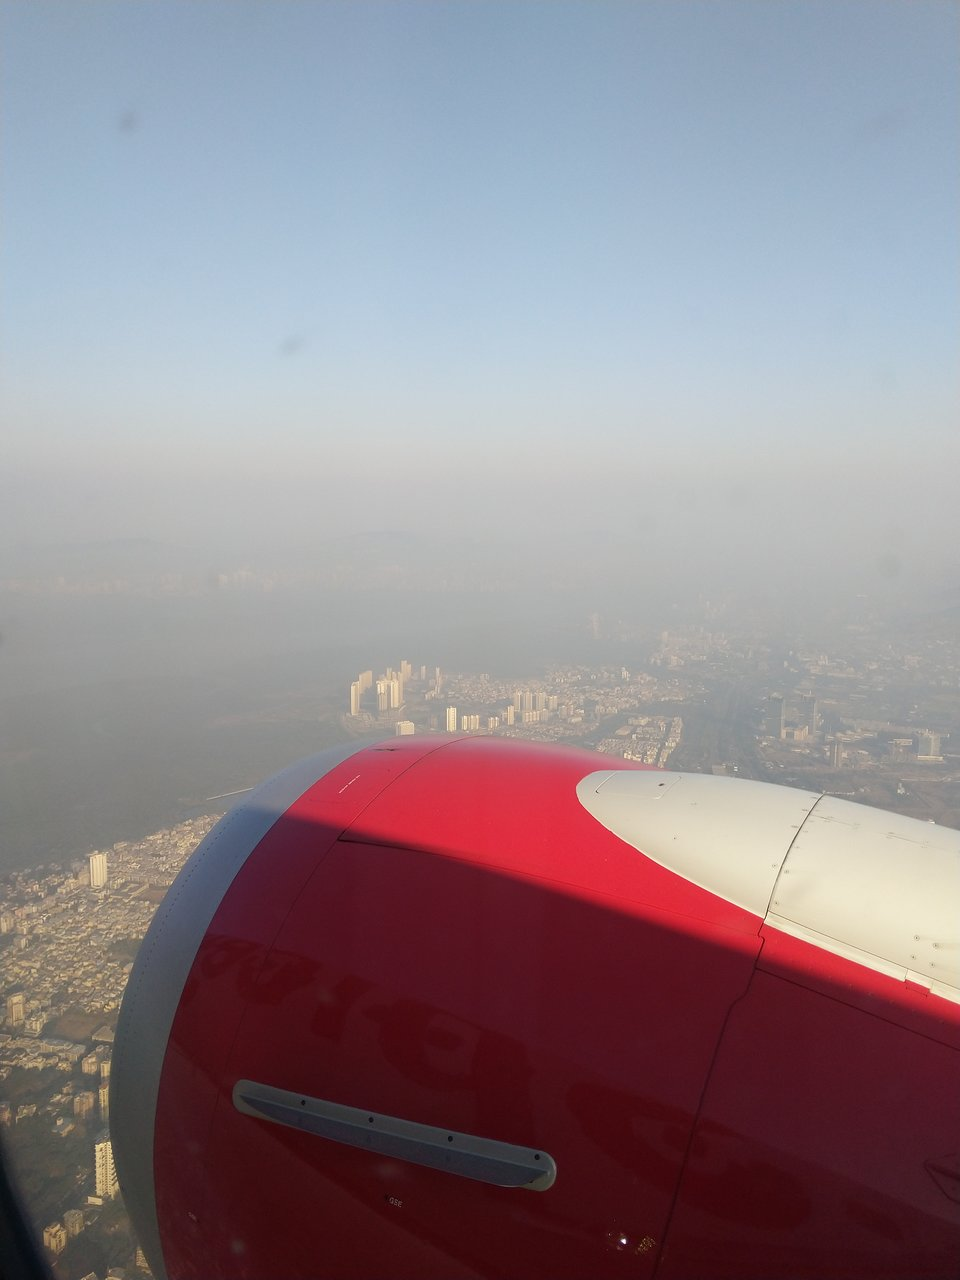 SpiceJet Flights and Reviews (with photos) - TripAdvisor